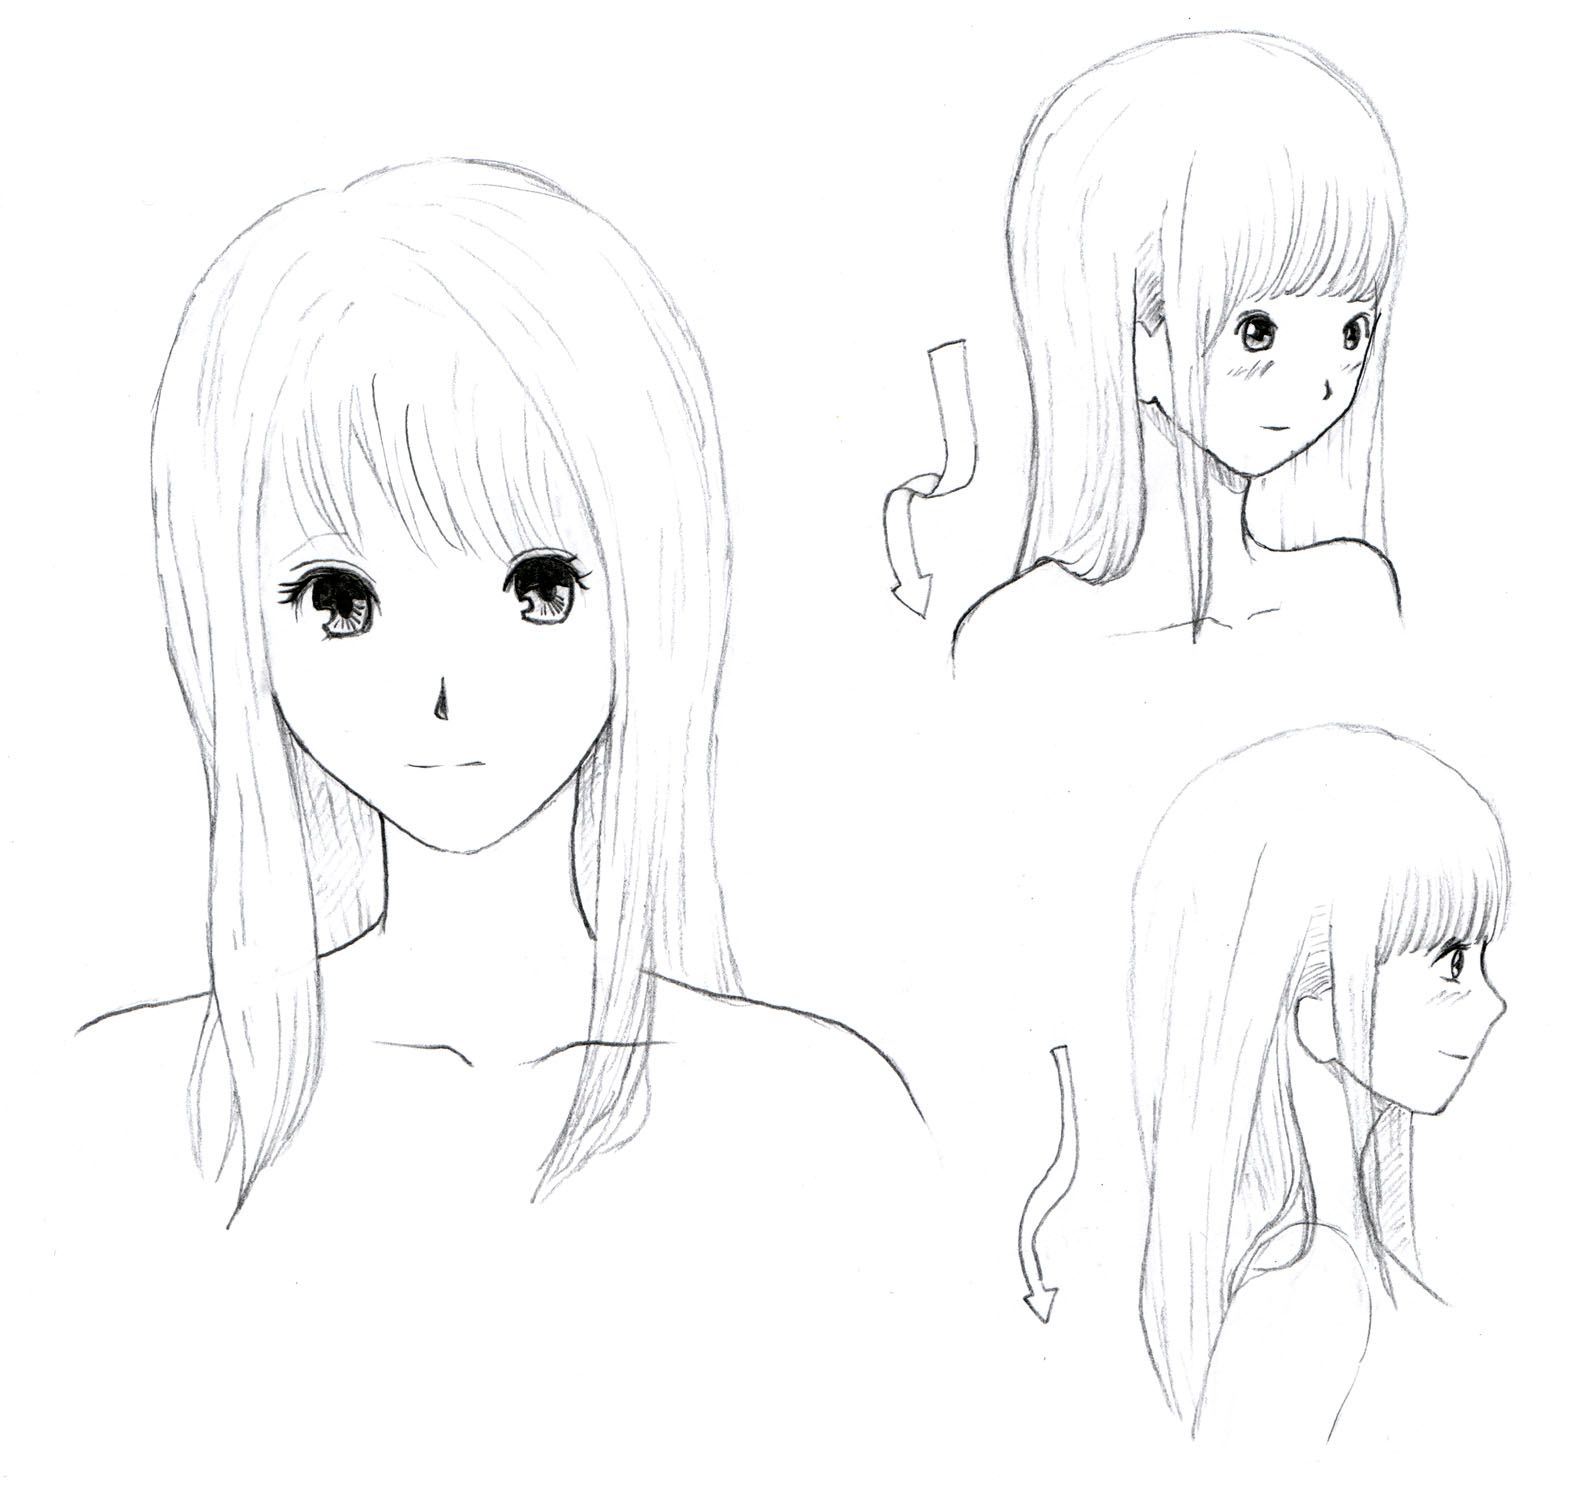 How To Draw Anime Shoulders JohnnyBro's How To Draw